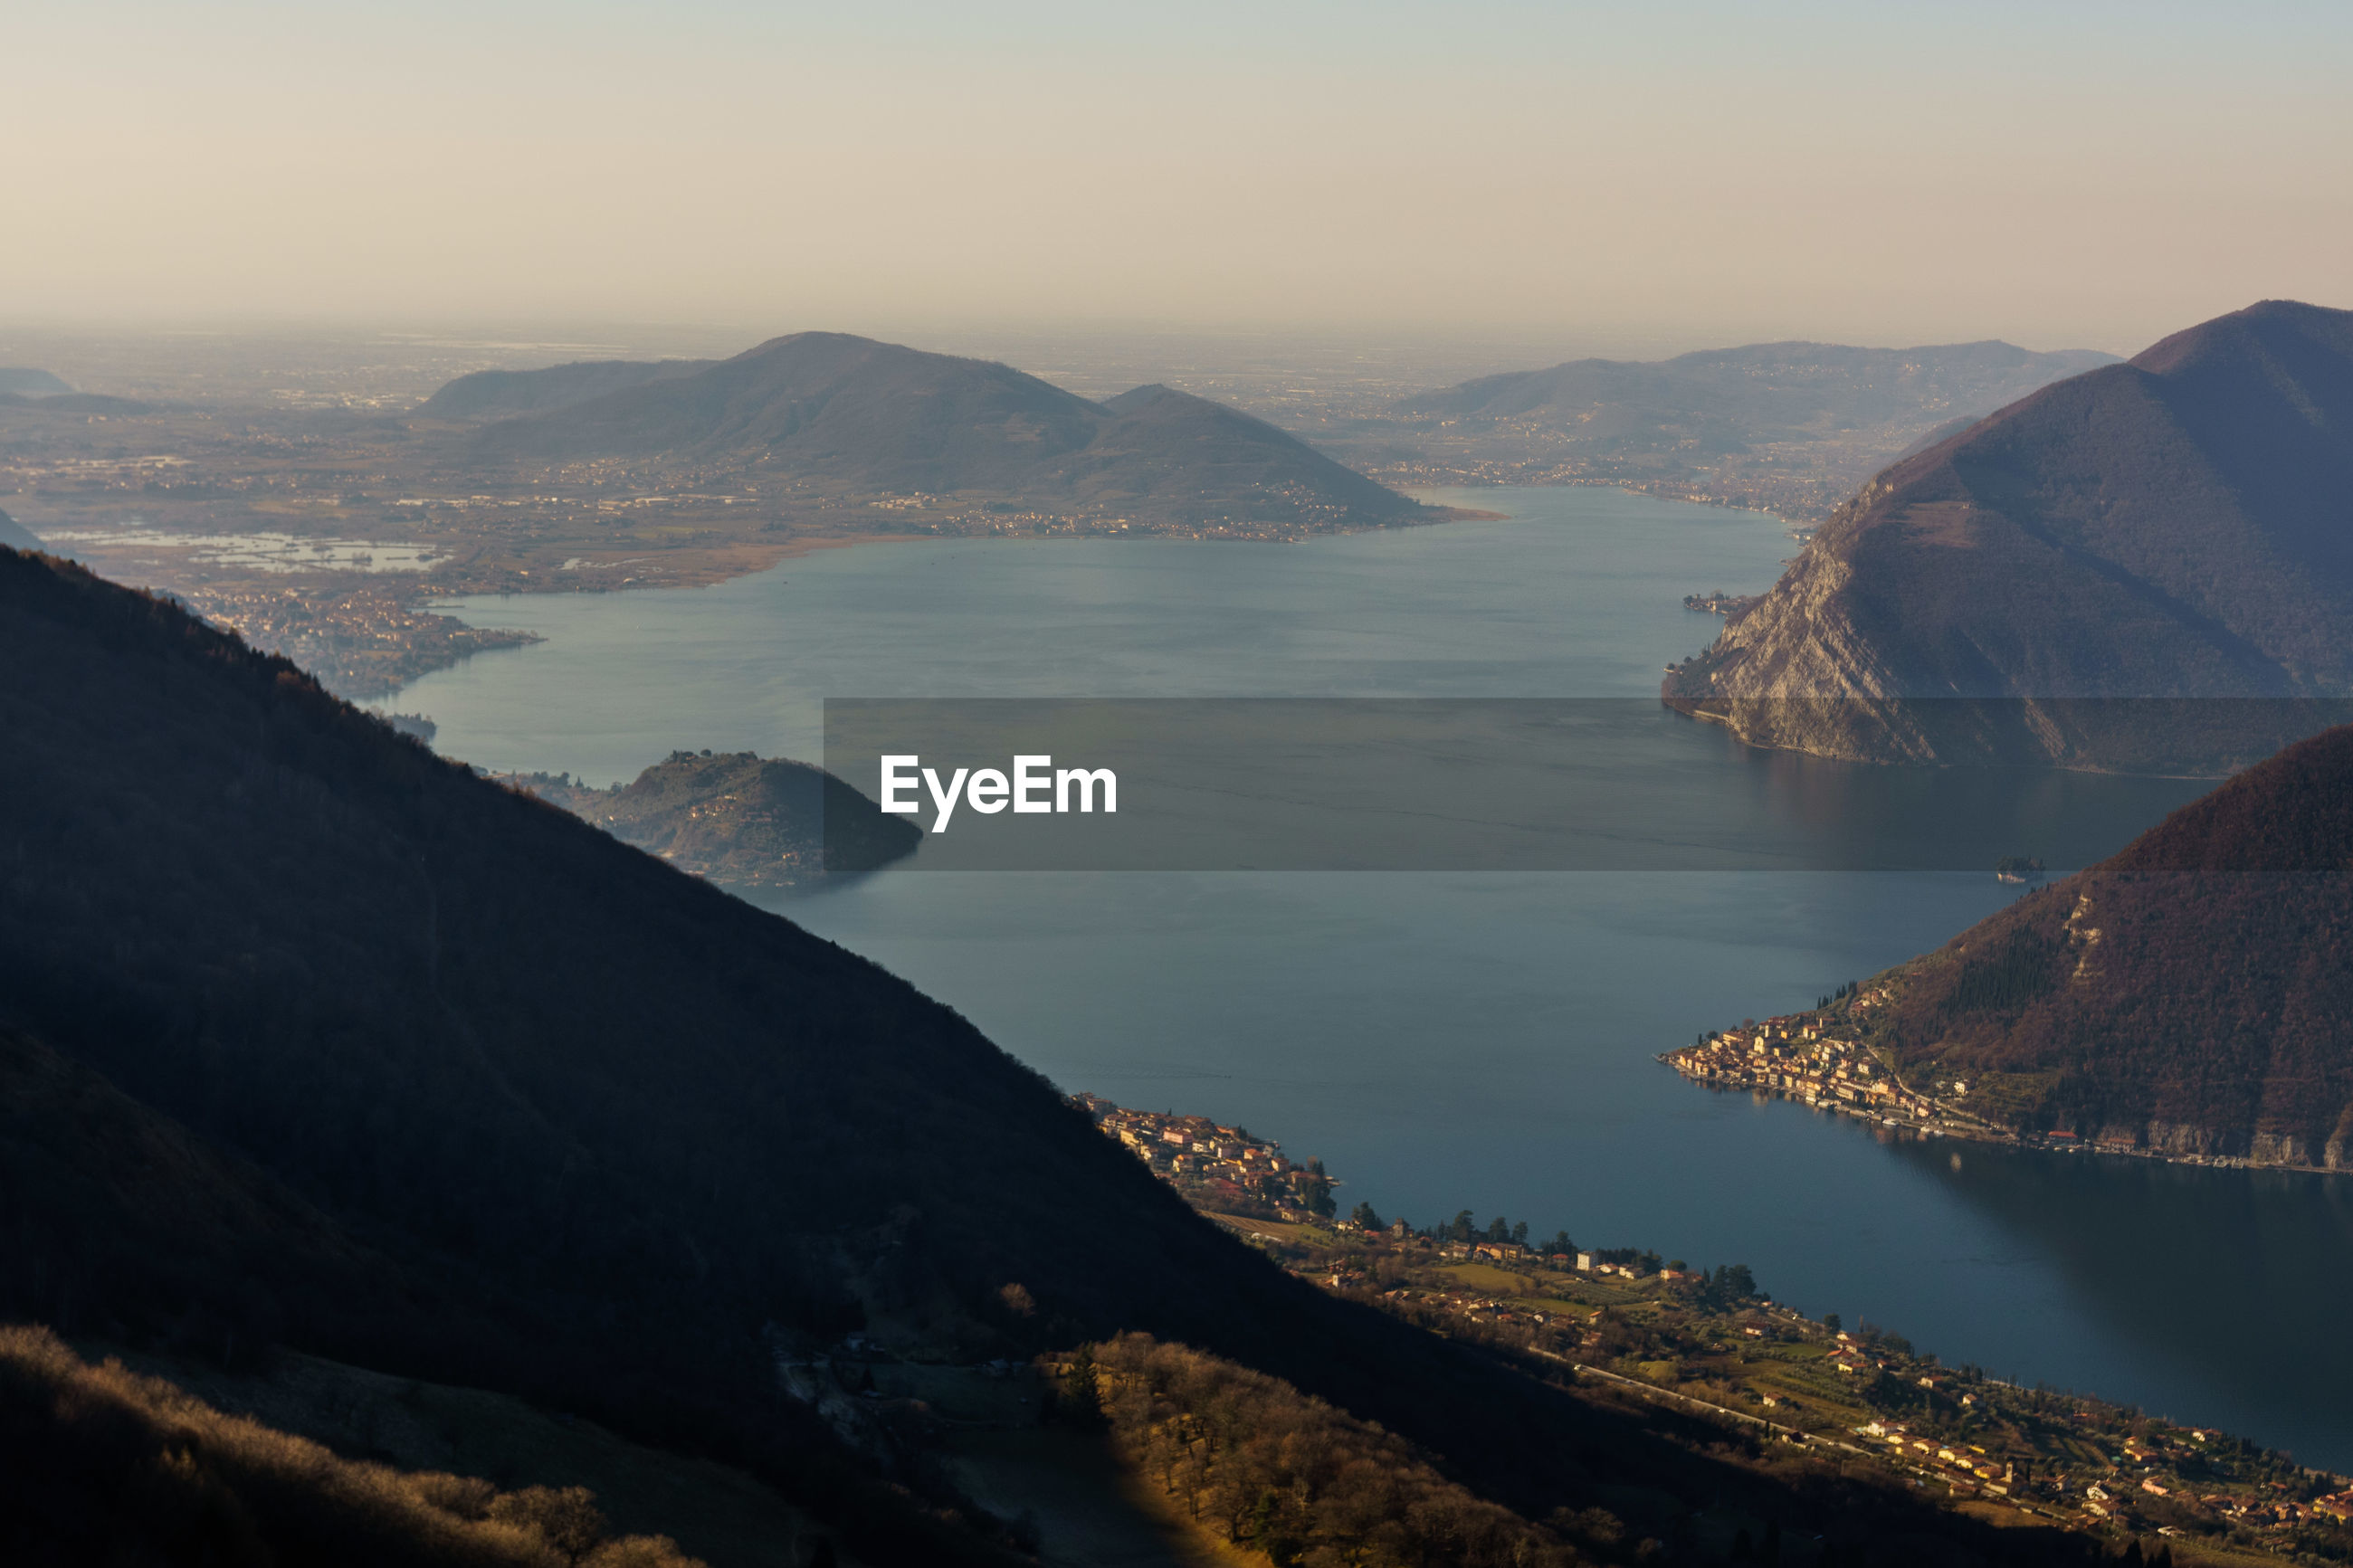 SCENIC VIEW OF SEA AND MOUNTAIN